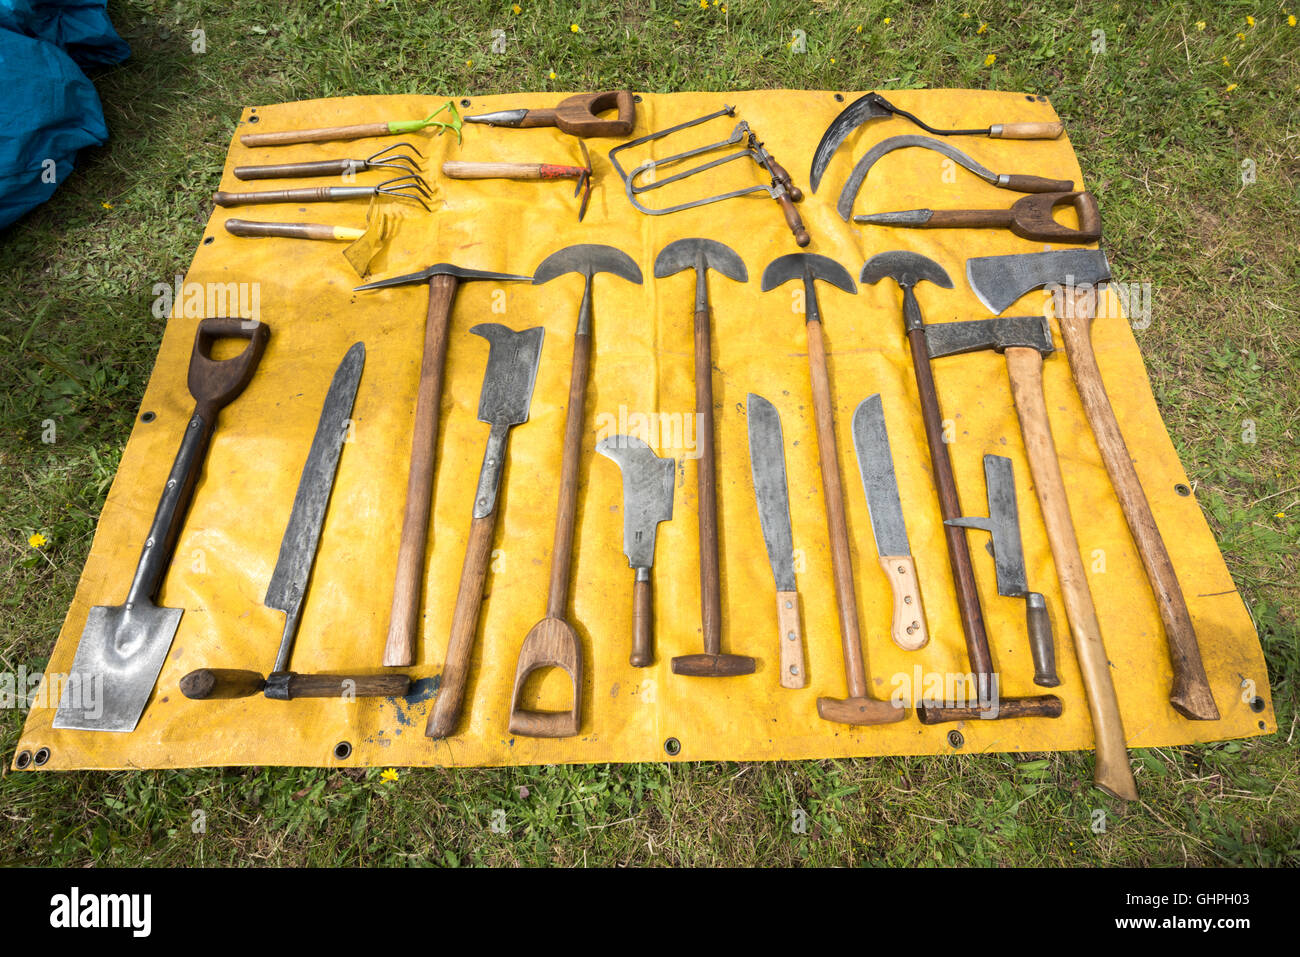 Antique gardening tools laid out on a yellow sheet for sale at a car boot sale - Stock Image